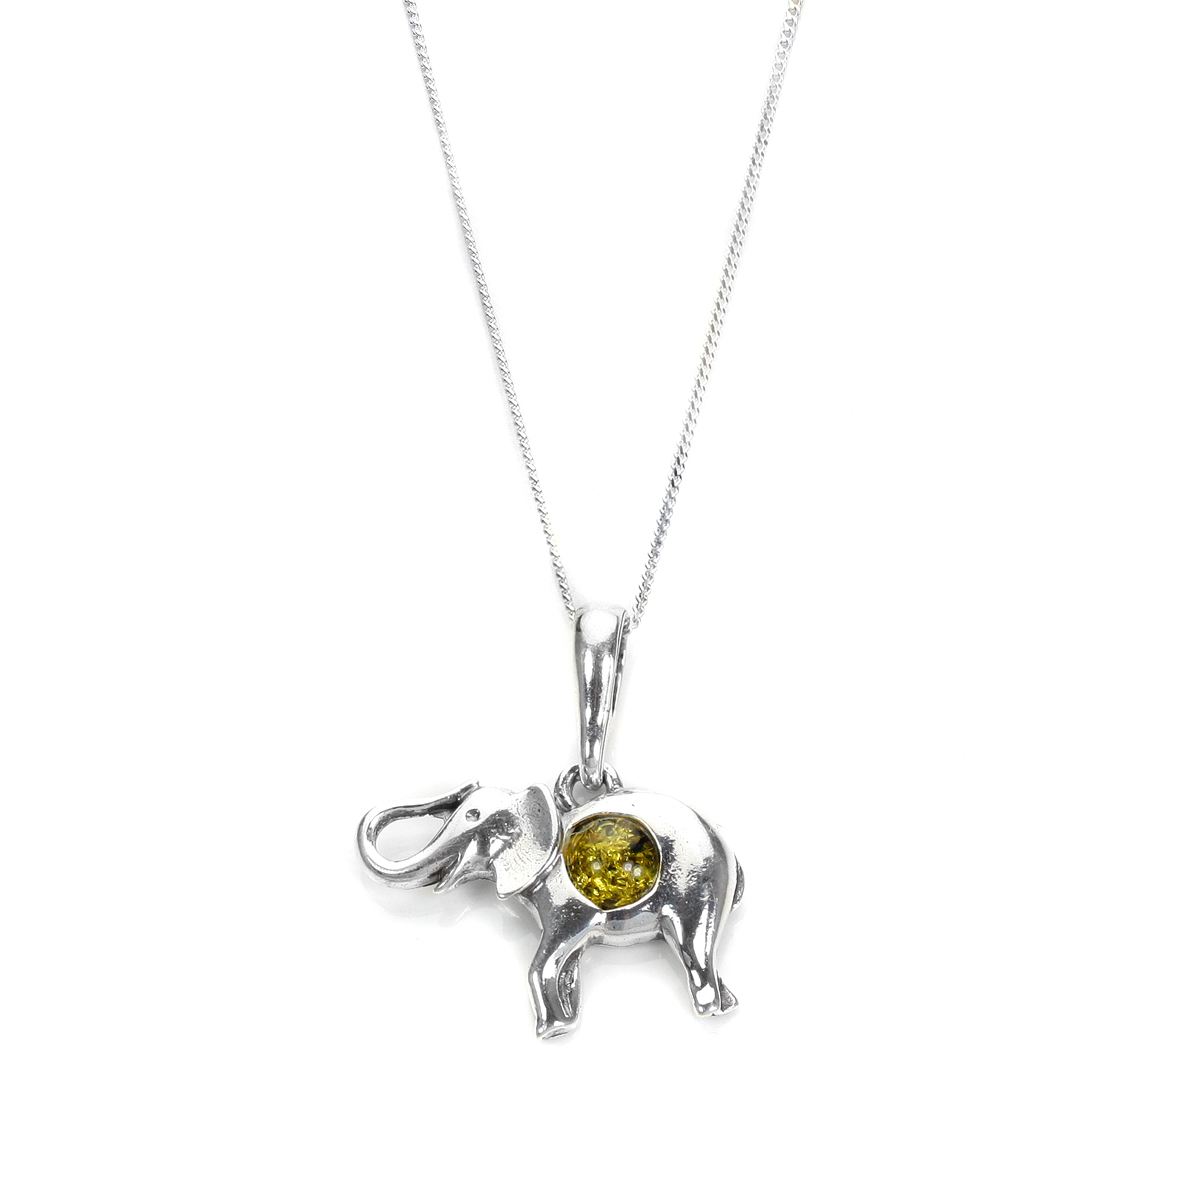 An image of Sterling Silver Baltic Amber Elephant Pendant